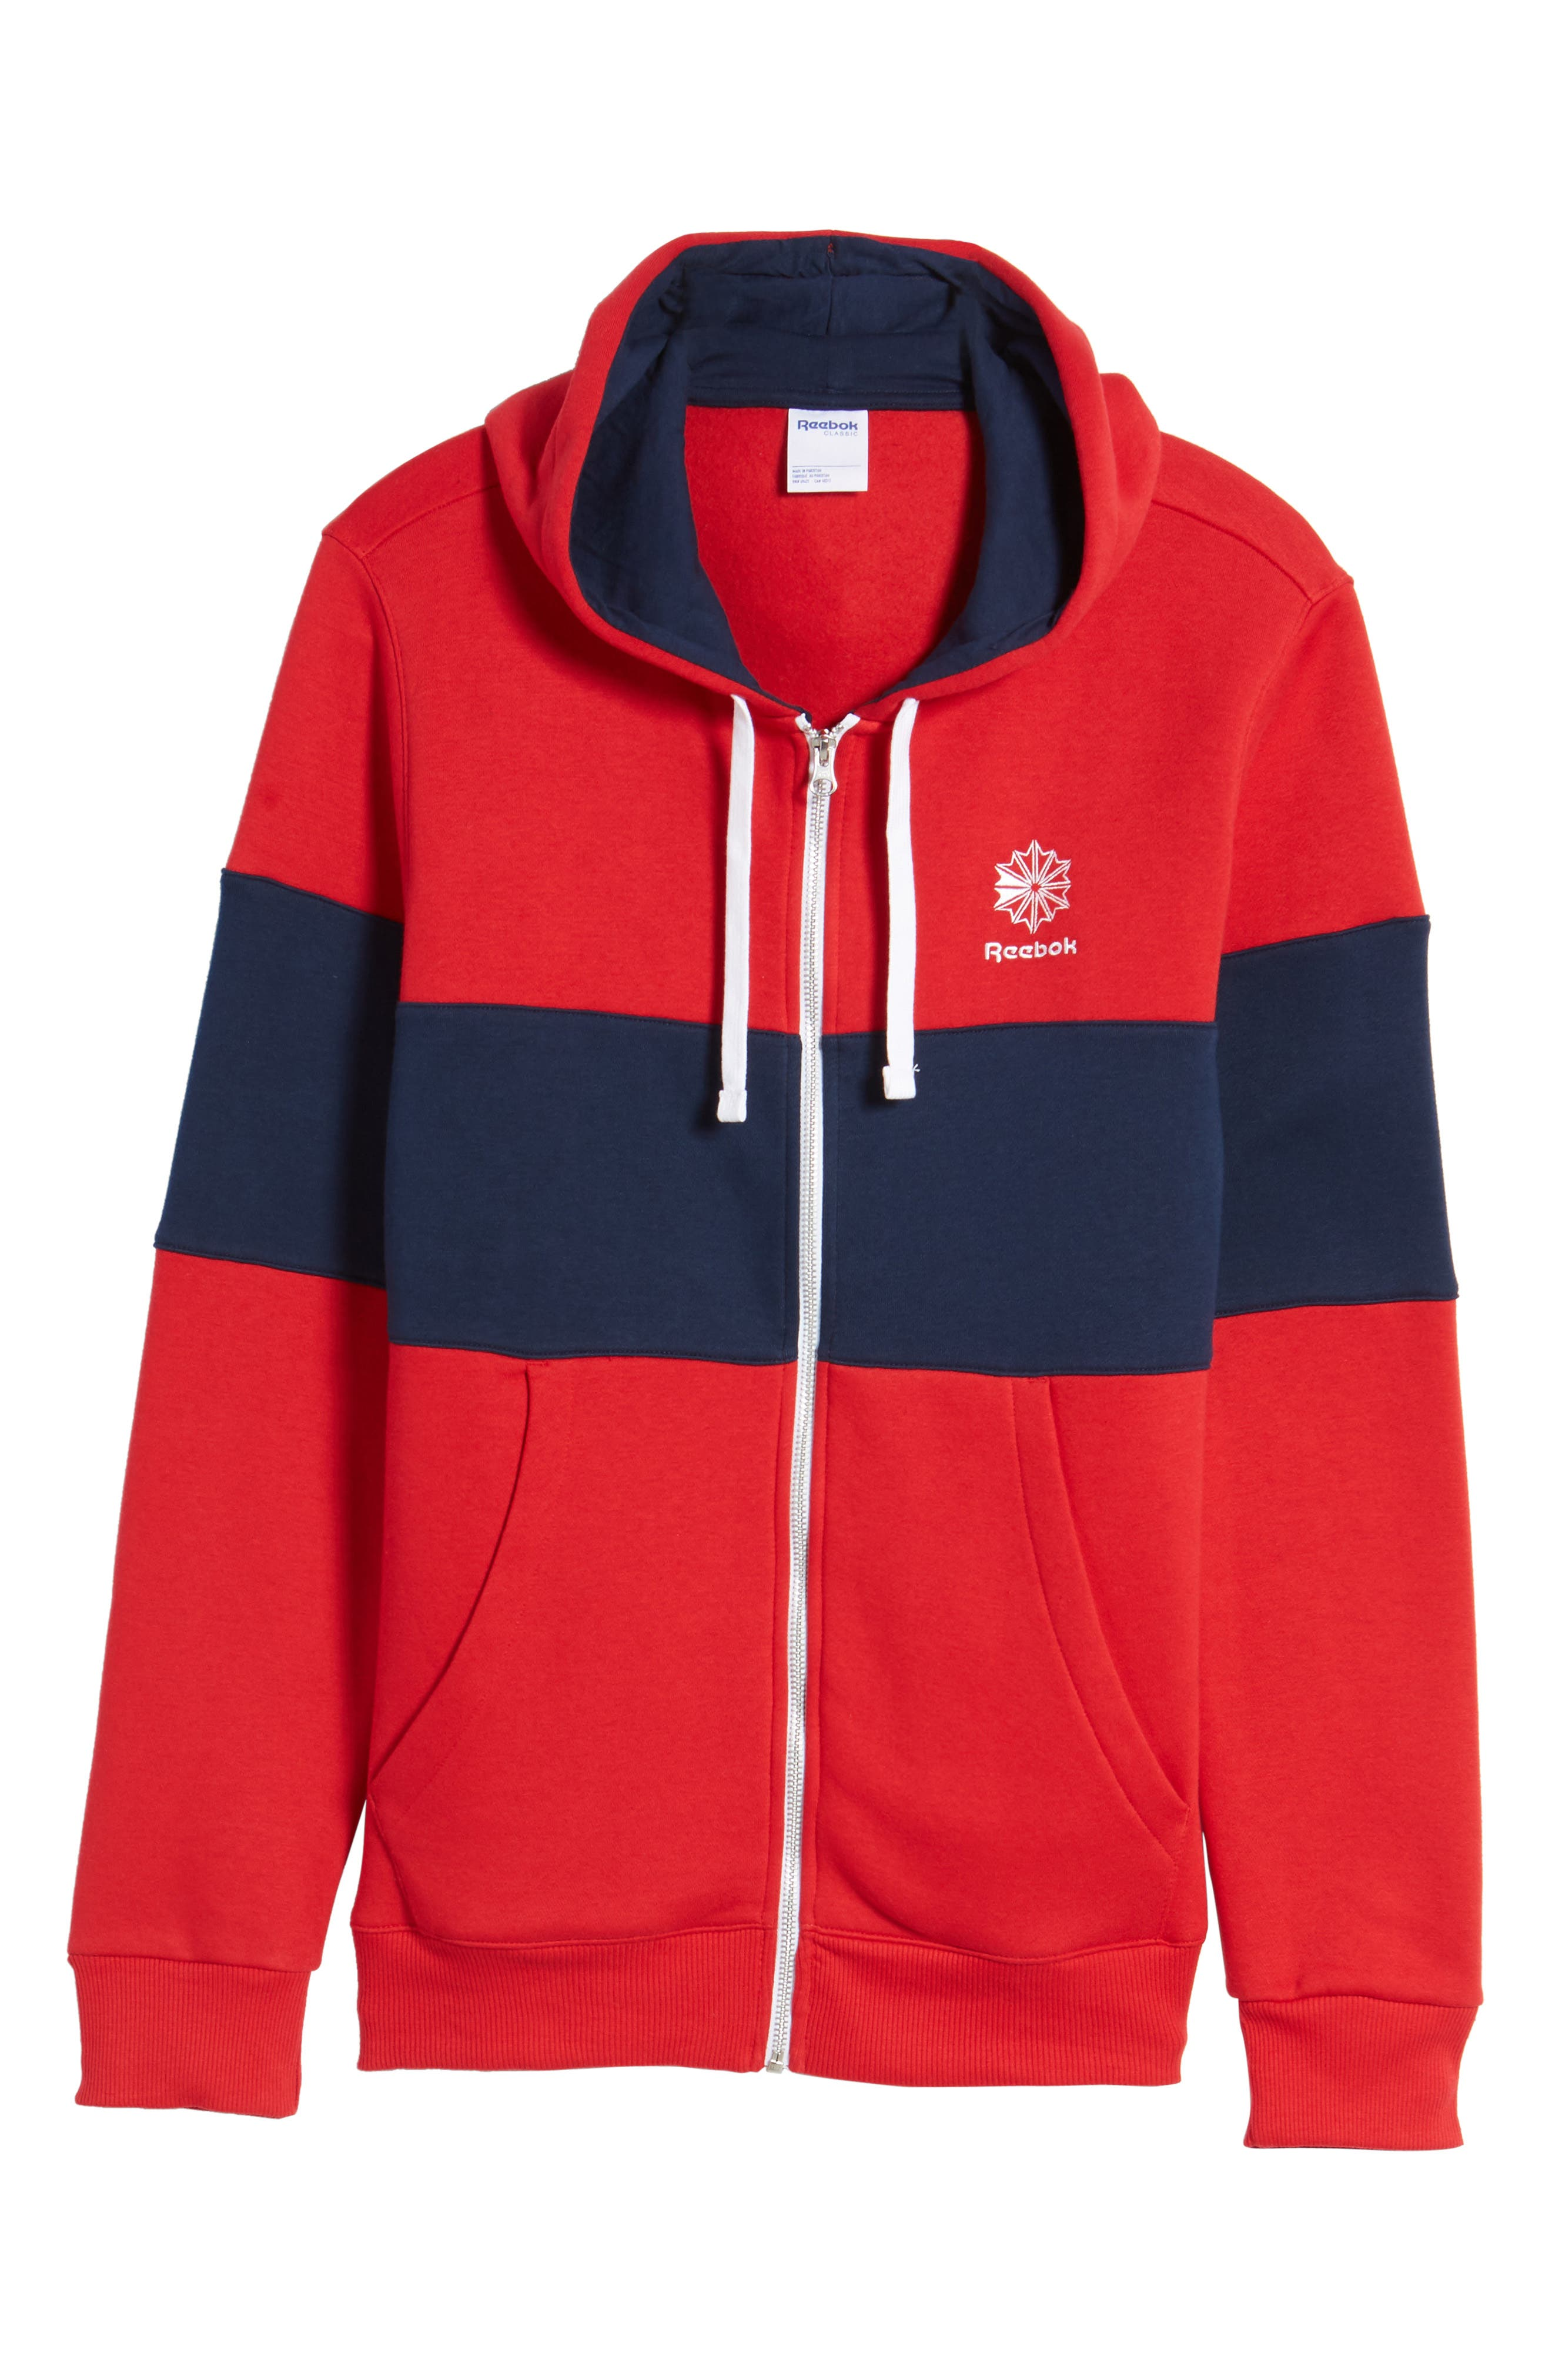 Classics Foundation Clockblock Zip Hoodie,                             Alternate thumbnail 6, color,                             Excellent Red/ Collegiate Navy